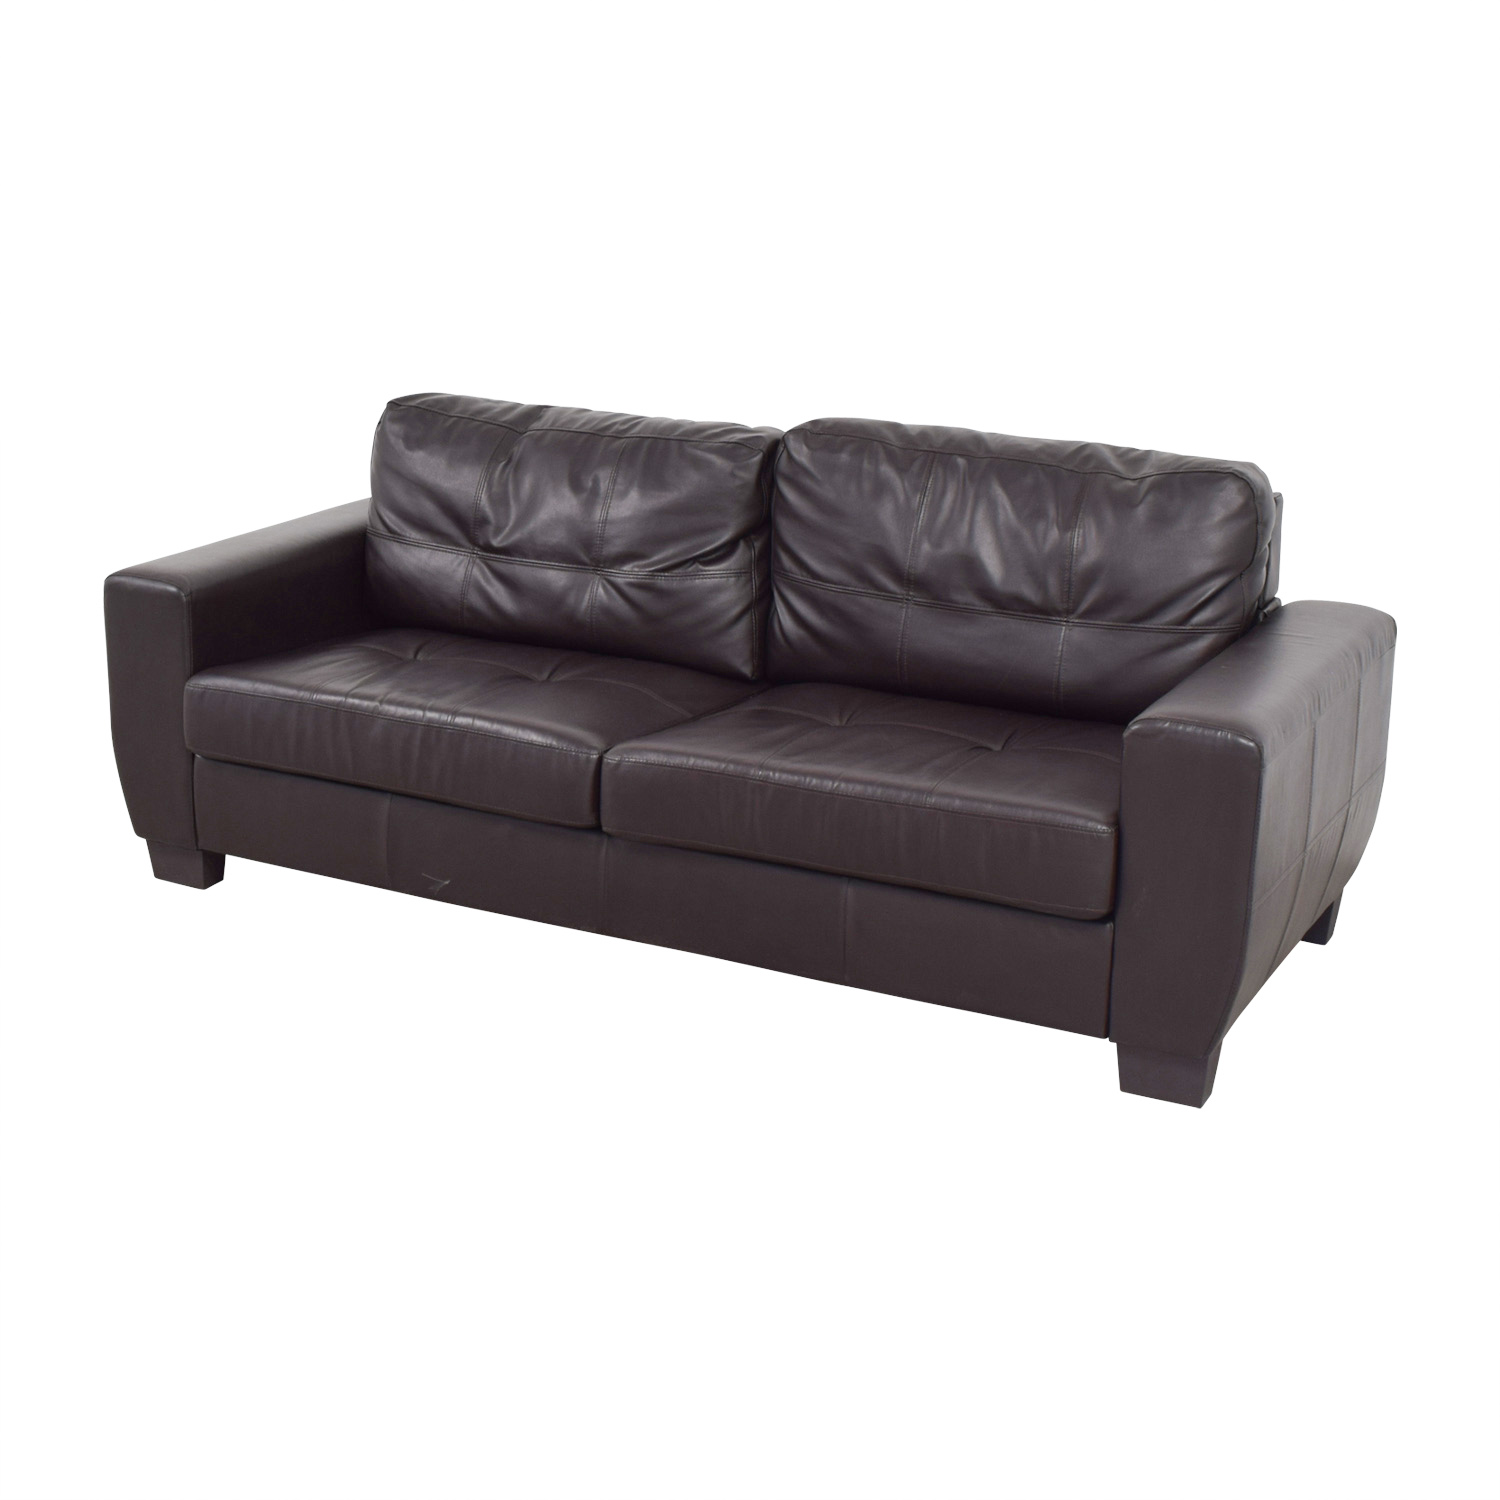 Brown Bonded Leather Two-Cushion Sofa sale